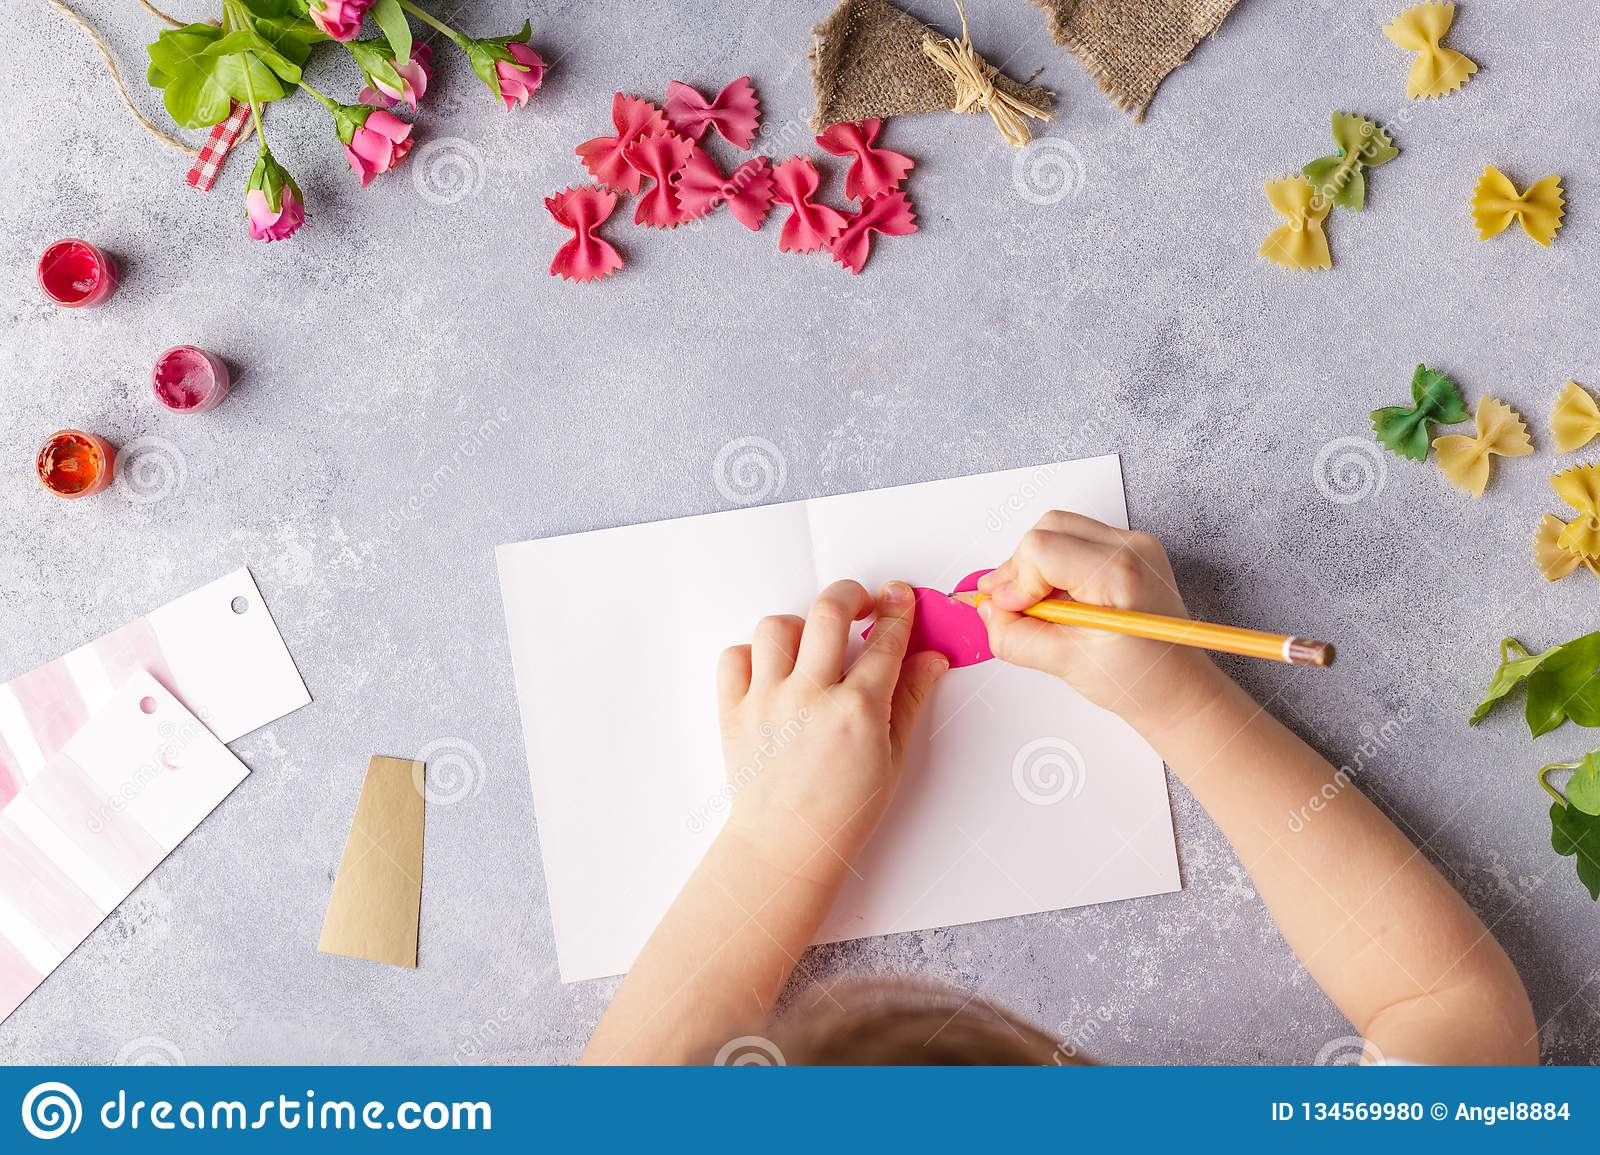 Paper Crafts For Mother Day 8 March Or Birthday Small Child Doing A Bouquet Of Flowers Out Colored And Pasta